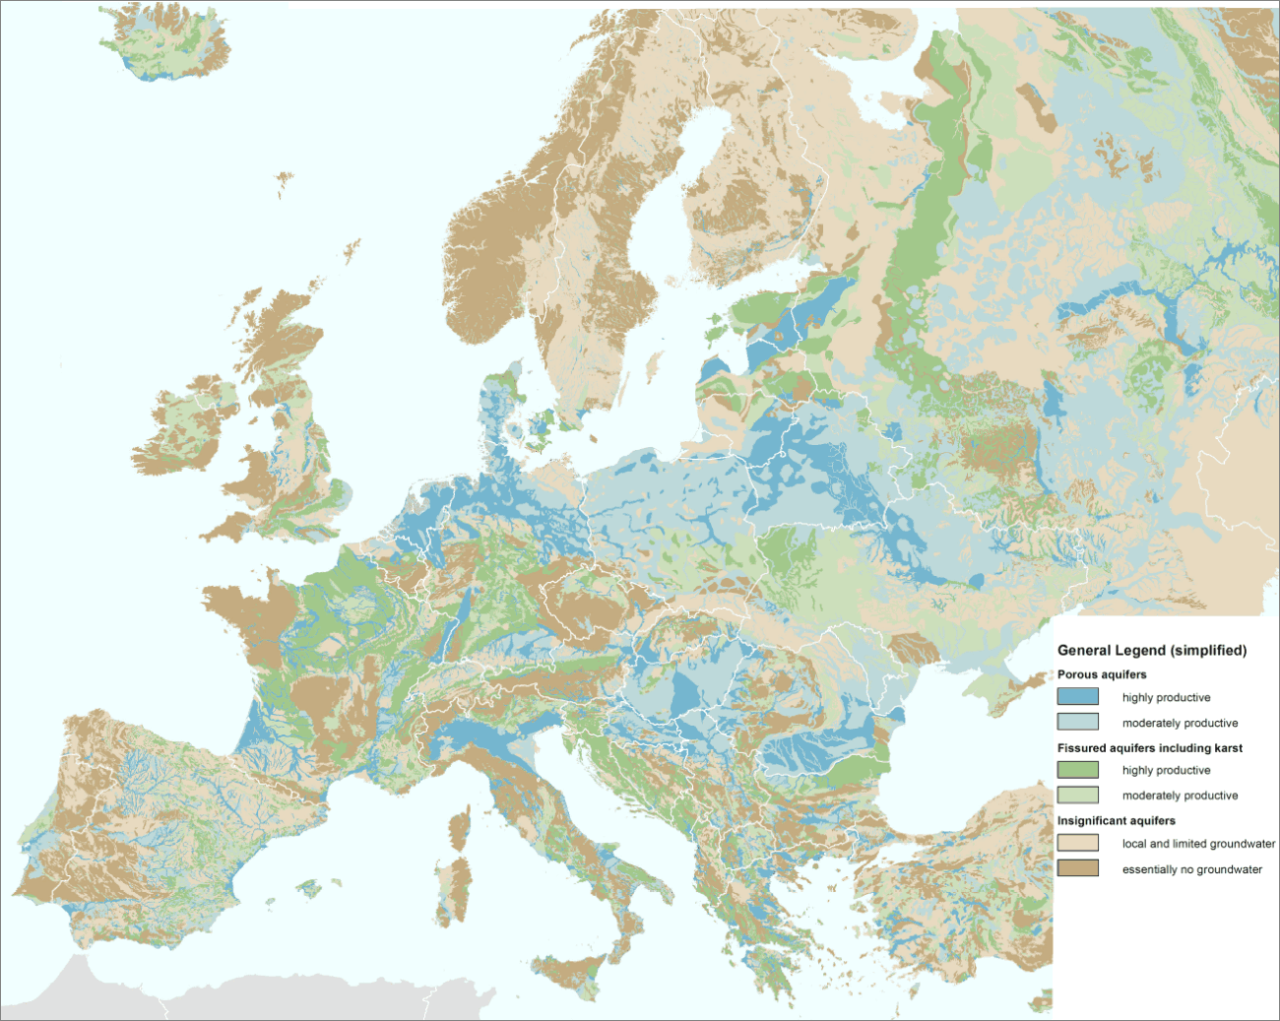 Groundwater map louisiana groundwater definition path decorations usgs regional groundwater availability studies map study area untitled ha f mississippi embayment aquifer system text the aquifer system is thickest in publicscrutiny Gallery